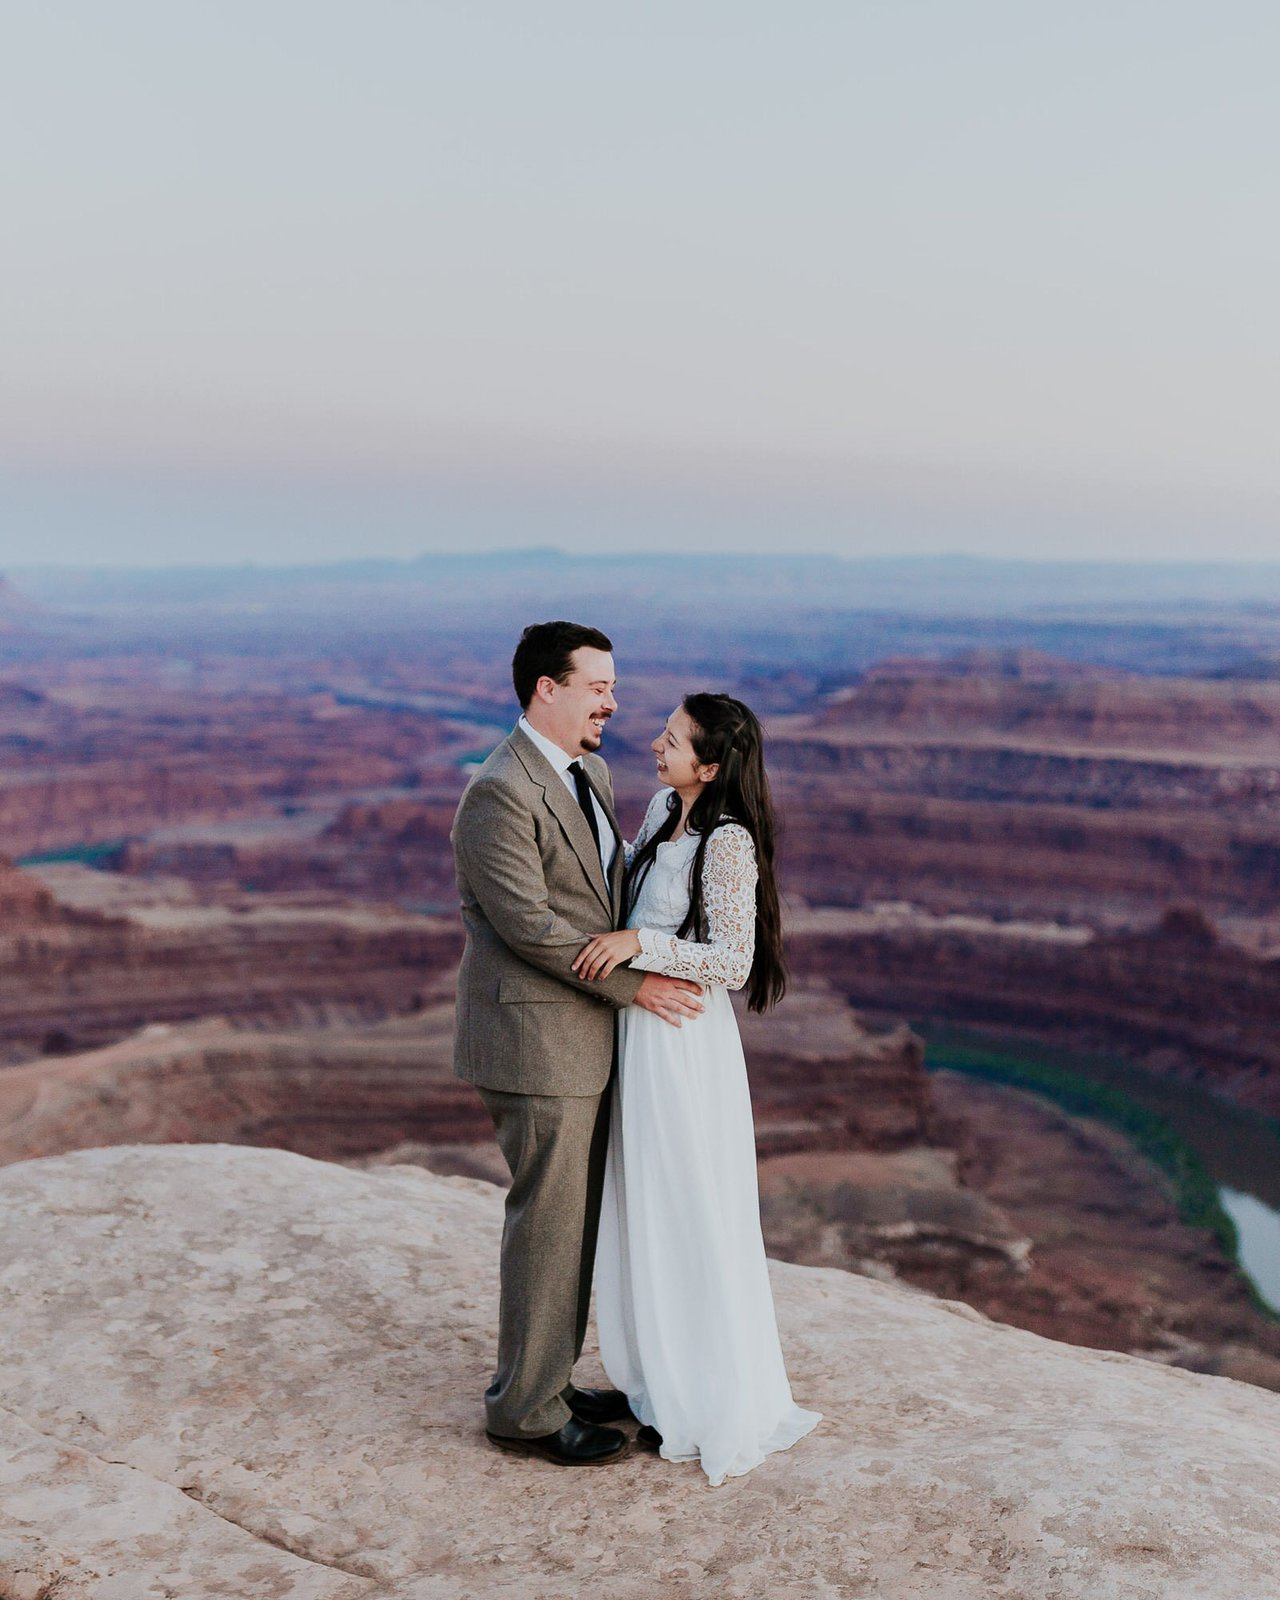 Bride and groom embrace on mountain in Moab.